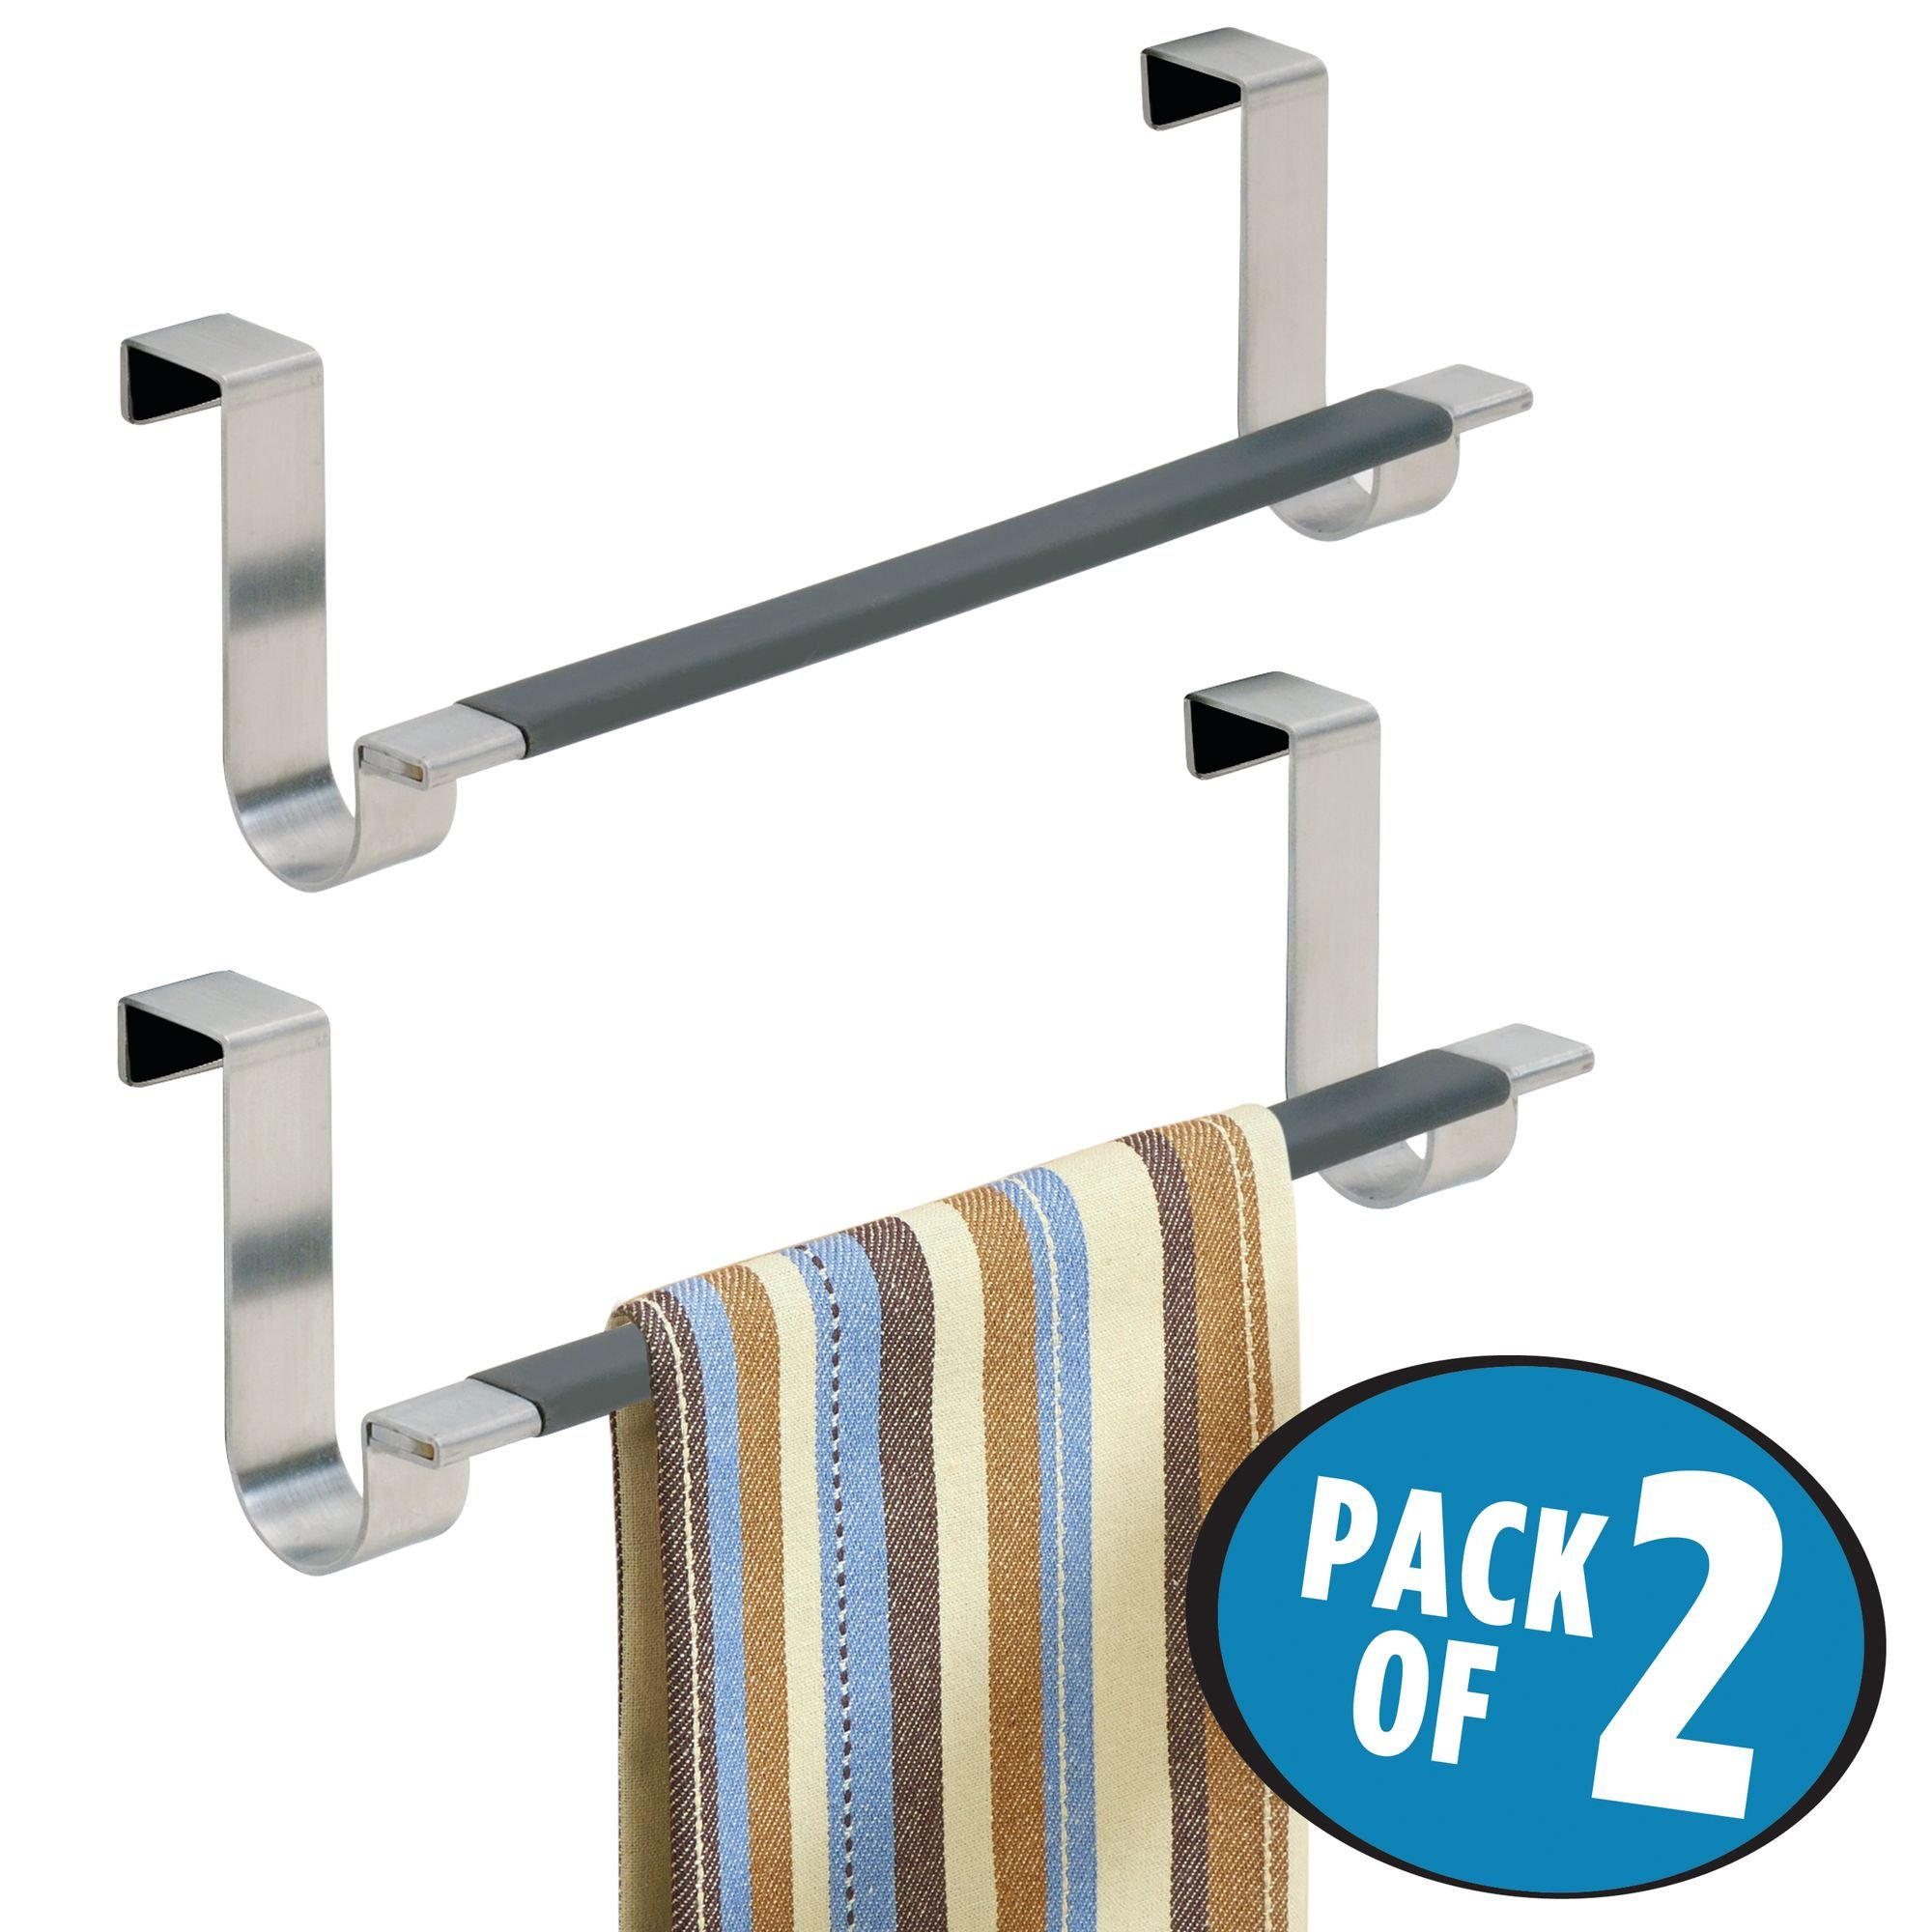 mDesign Decorative Kitchen Over Cabinet Towel Bar - Hang on Inside or Outside of Doors, Storage and Display Rack for Hand, Dish, and Tea Towels - 9'' Wide, Pack of 2, Brushed Stainless Steel by mDesign